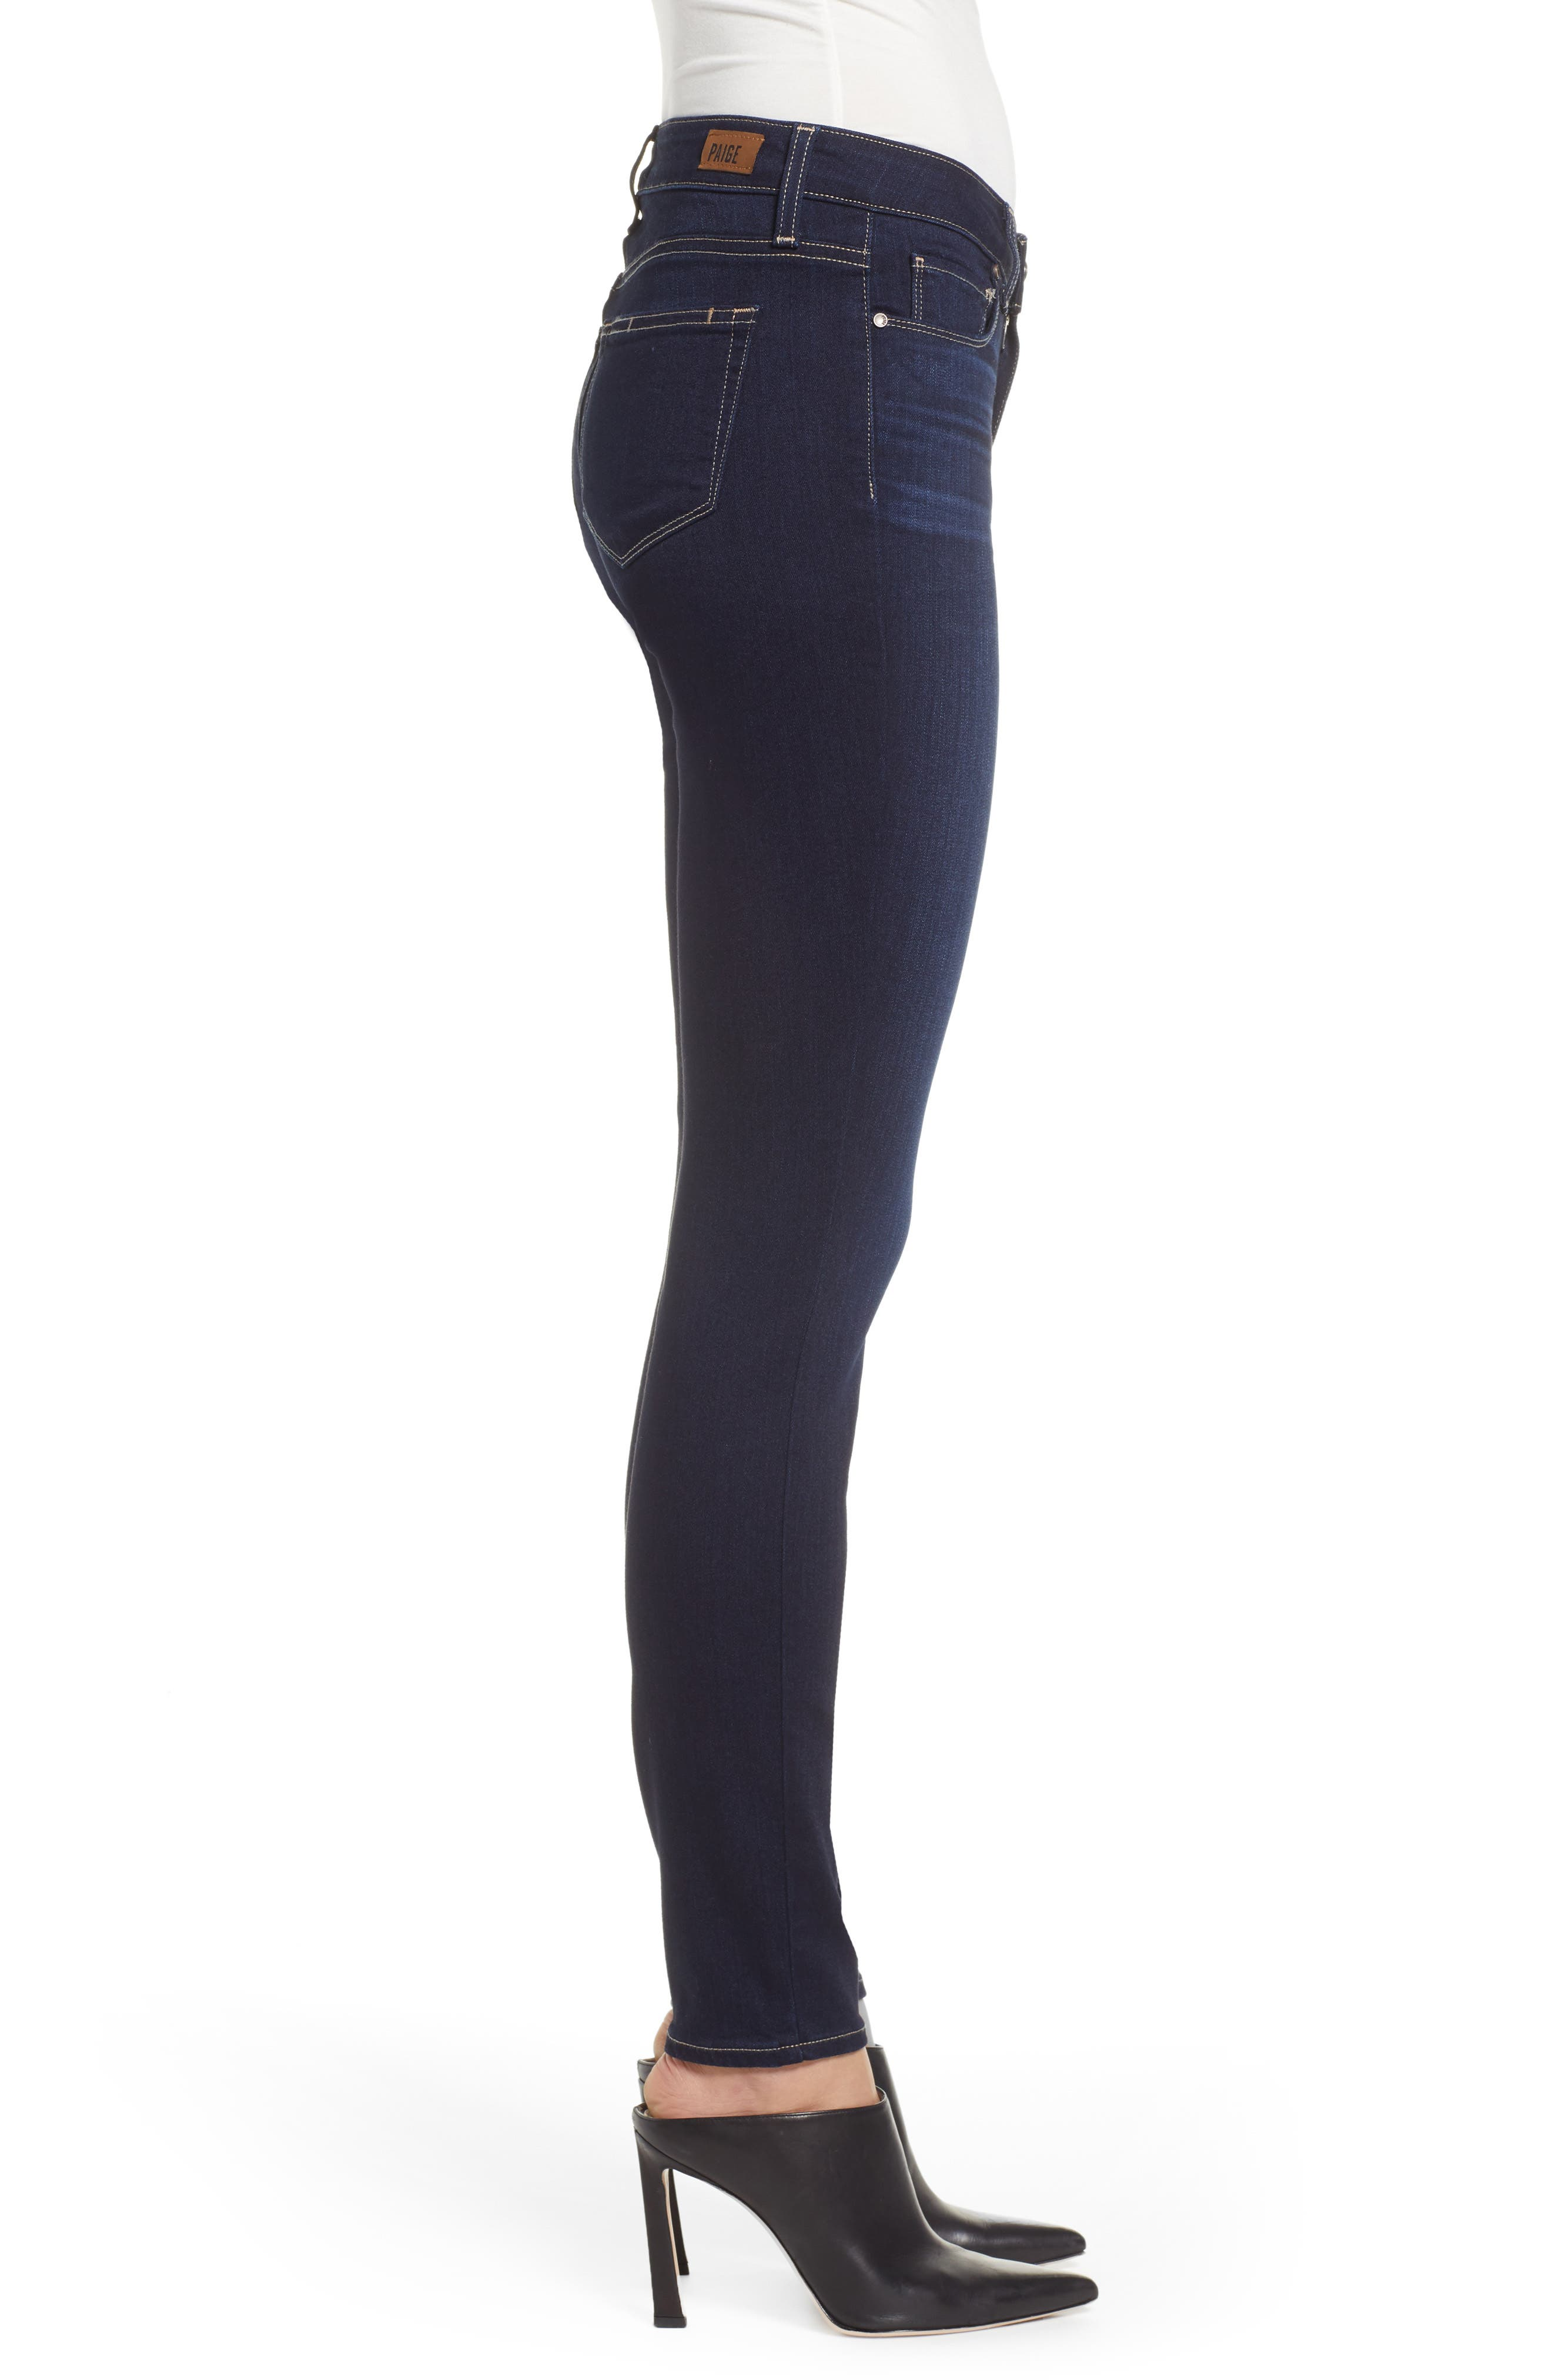 PAIGE,                             Transcend - Verdugo Ultra Skinny Jeans,                             Alternate thumbnail 3, color,                             ACADIA